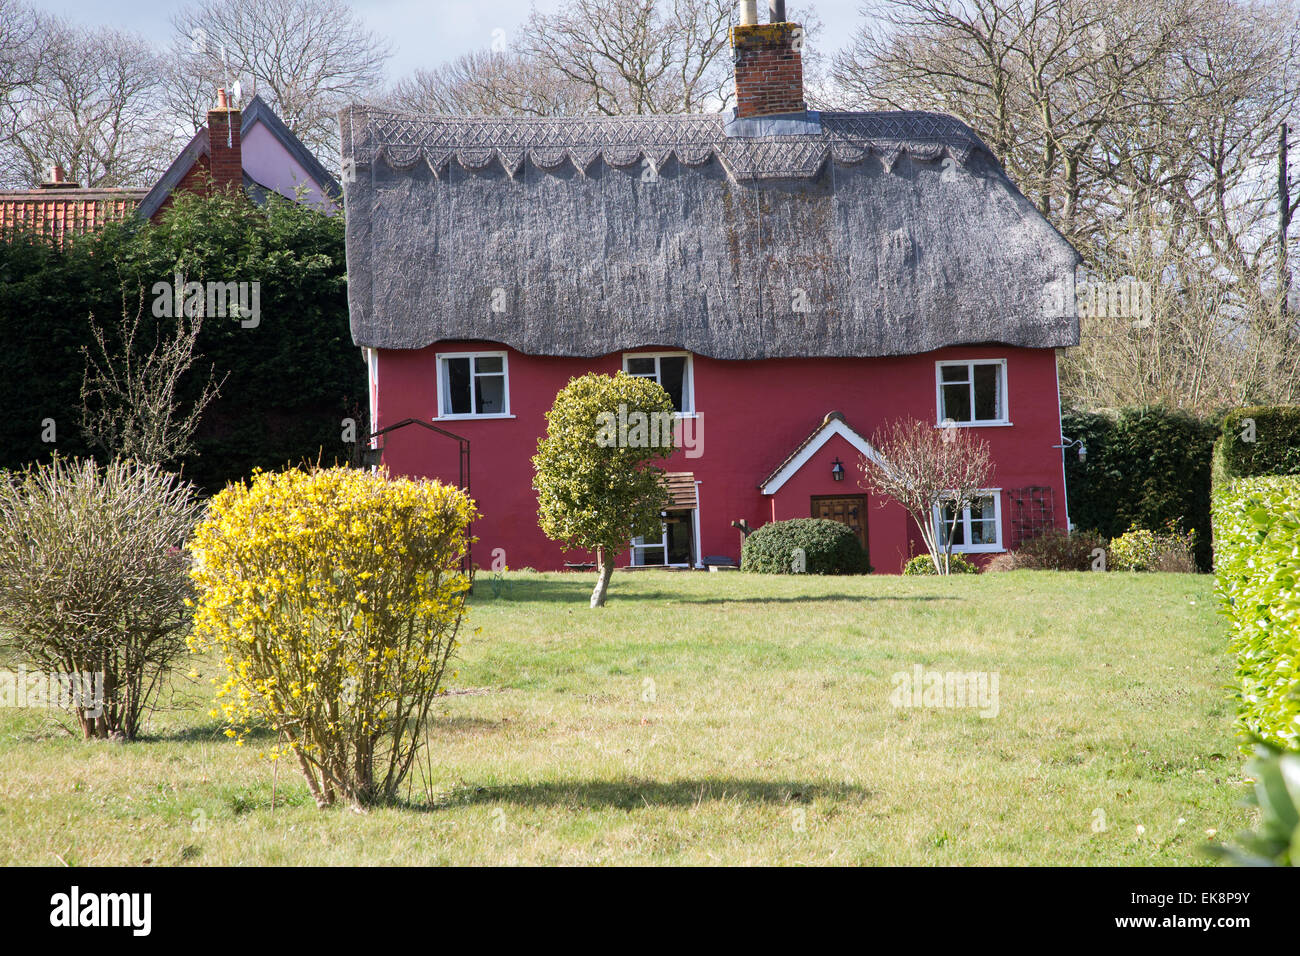 Classic picturesque red thatched country cottage in rural England with a lawn - Stock Image